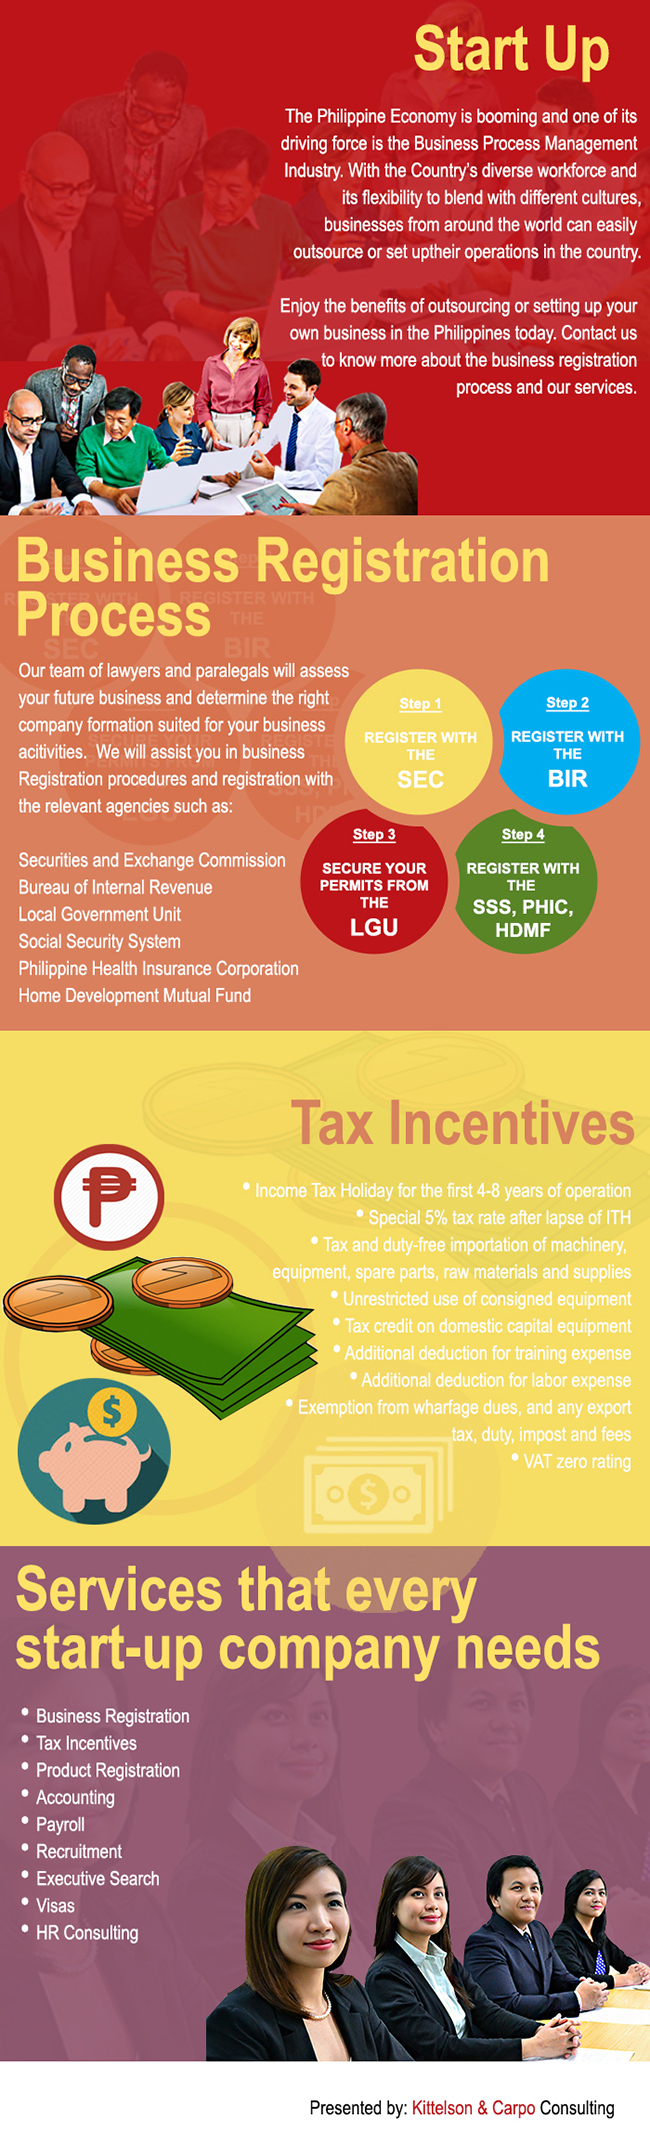 Business Registration, Tax Incentives